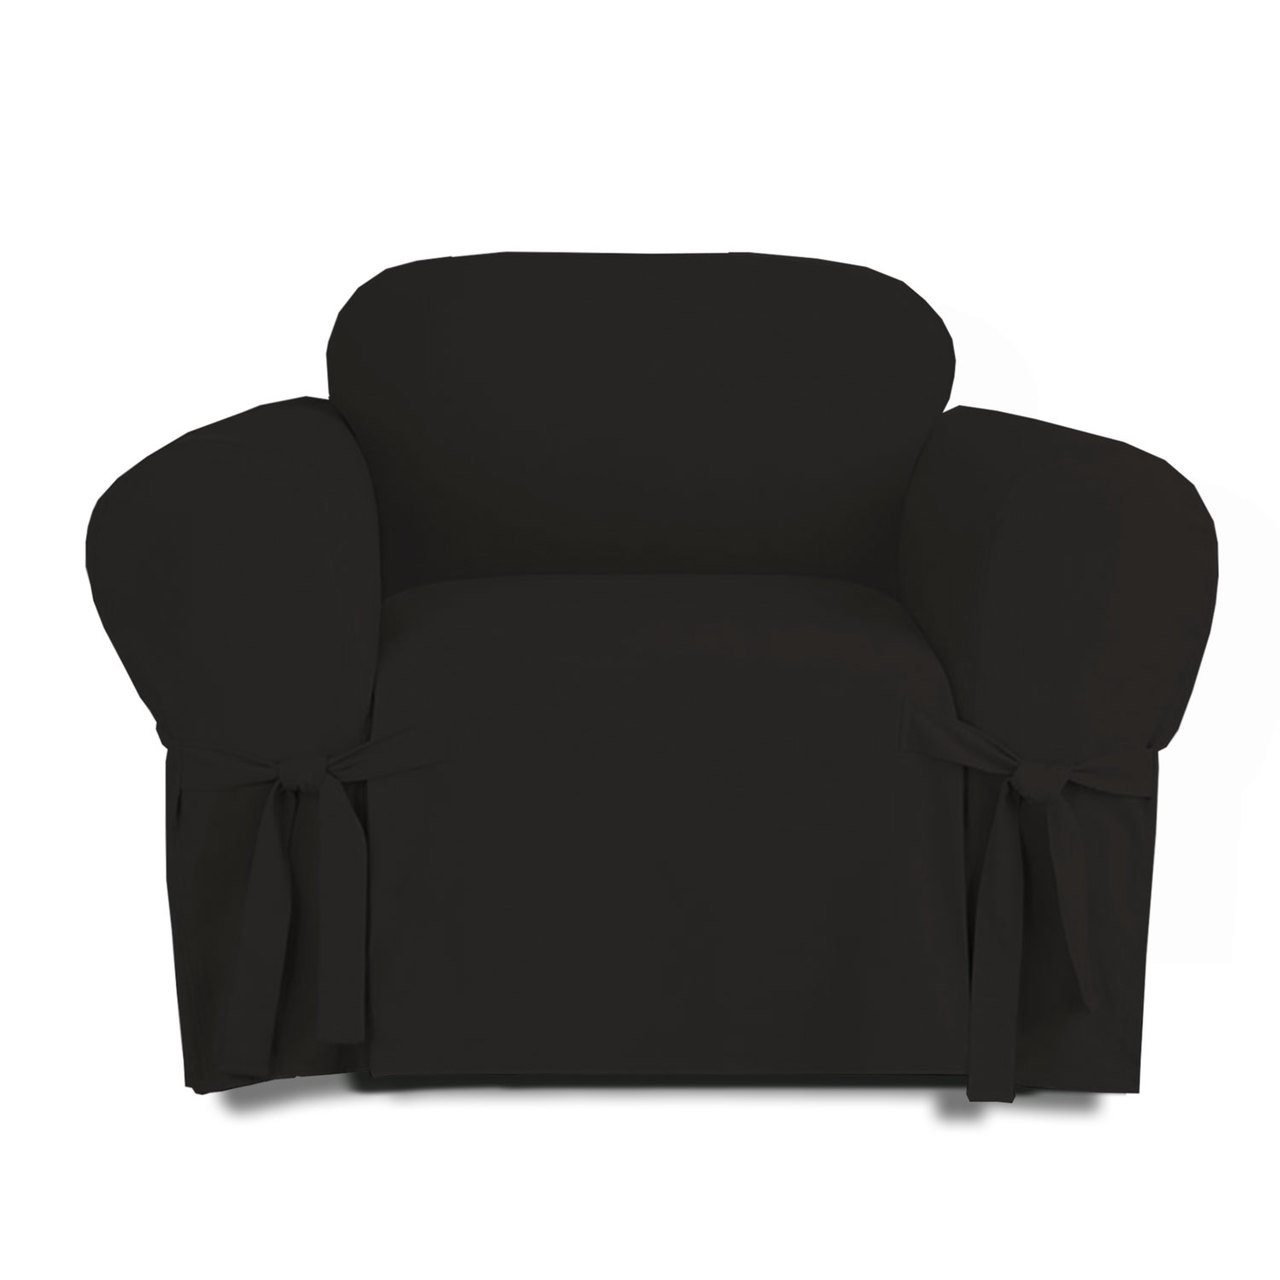 linen store microsuede slipcover furniture protector cover chair black black furniture covers